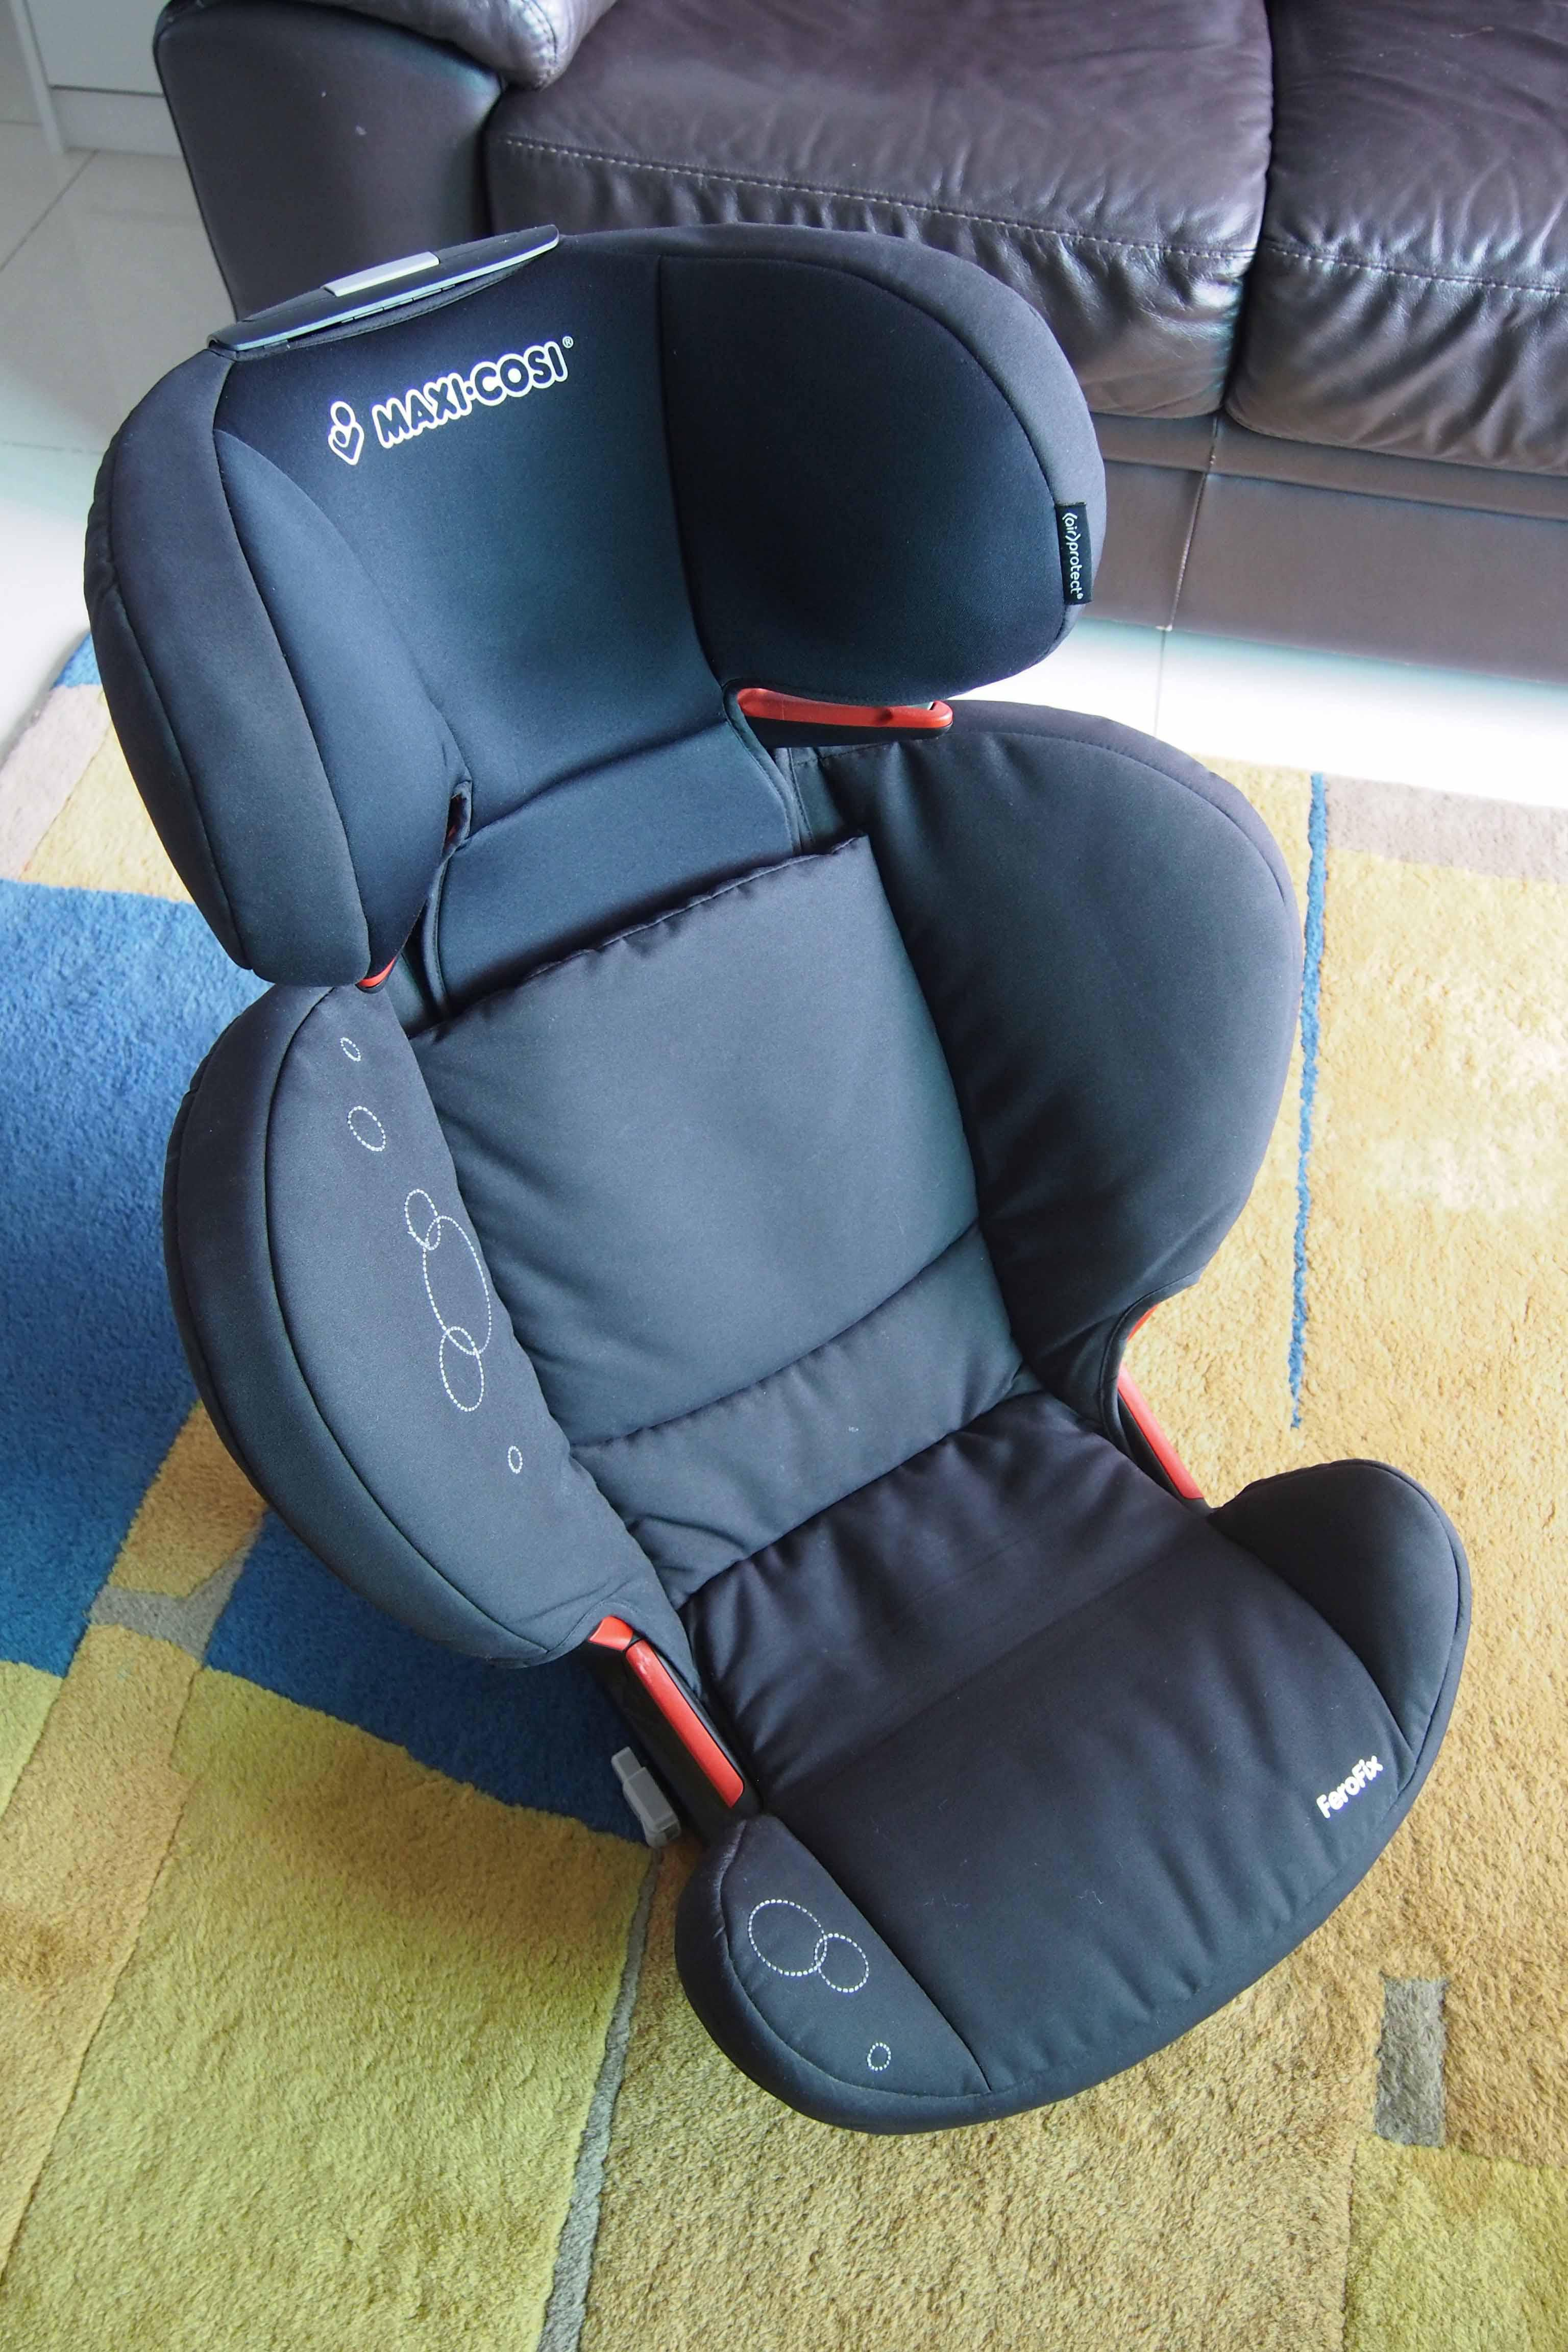 maxi cosi ferofix car seat 85 new black color. Black Bedroom Furniture Sets. Home Design Ideas